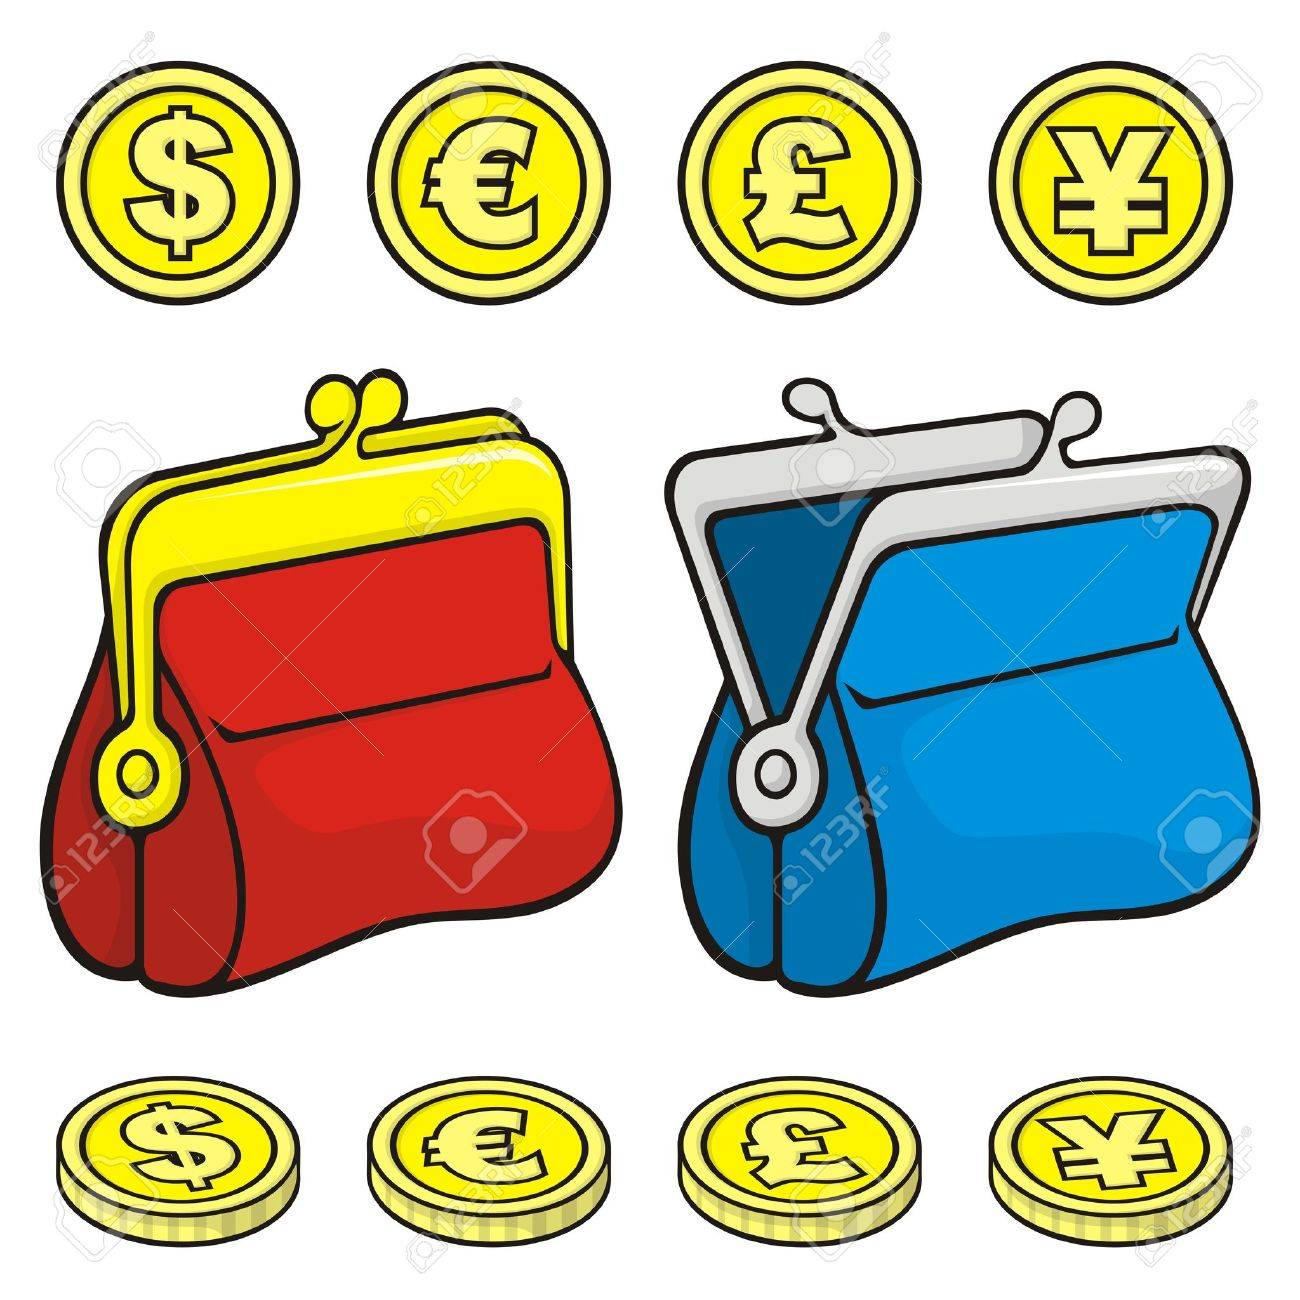 Red and blue coin purse wallet icons closed and open with coins. - 9448173